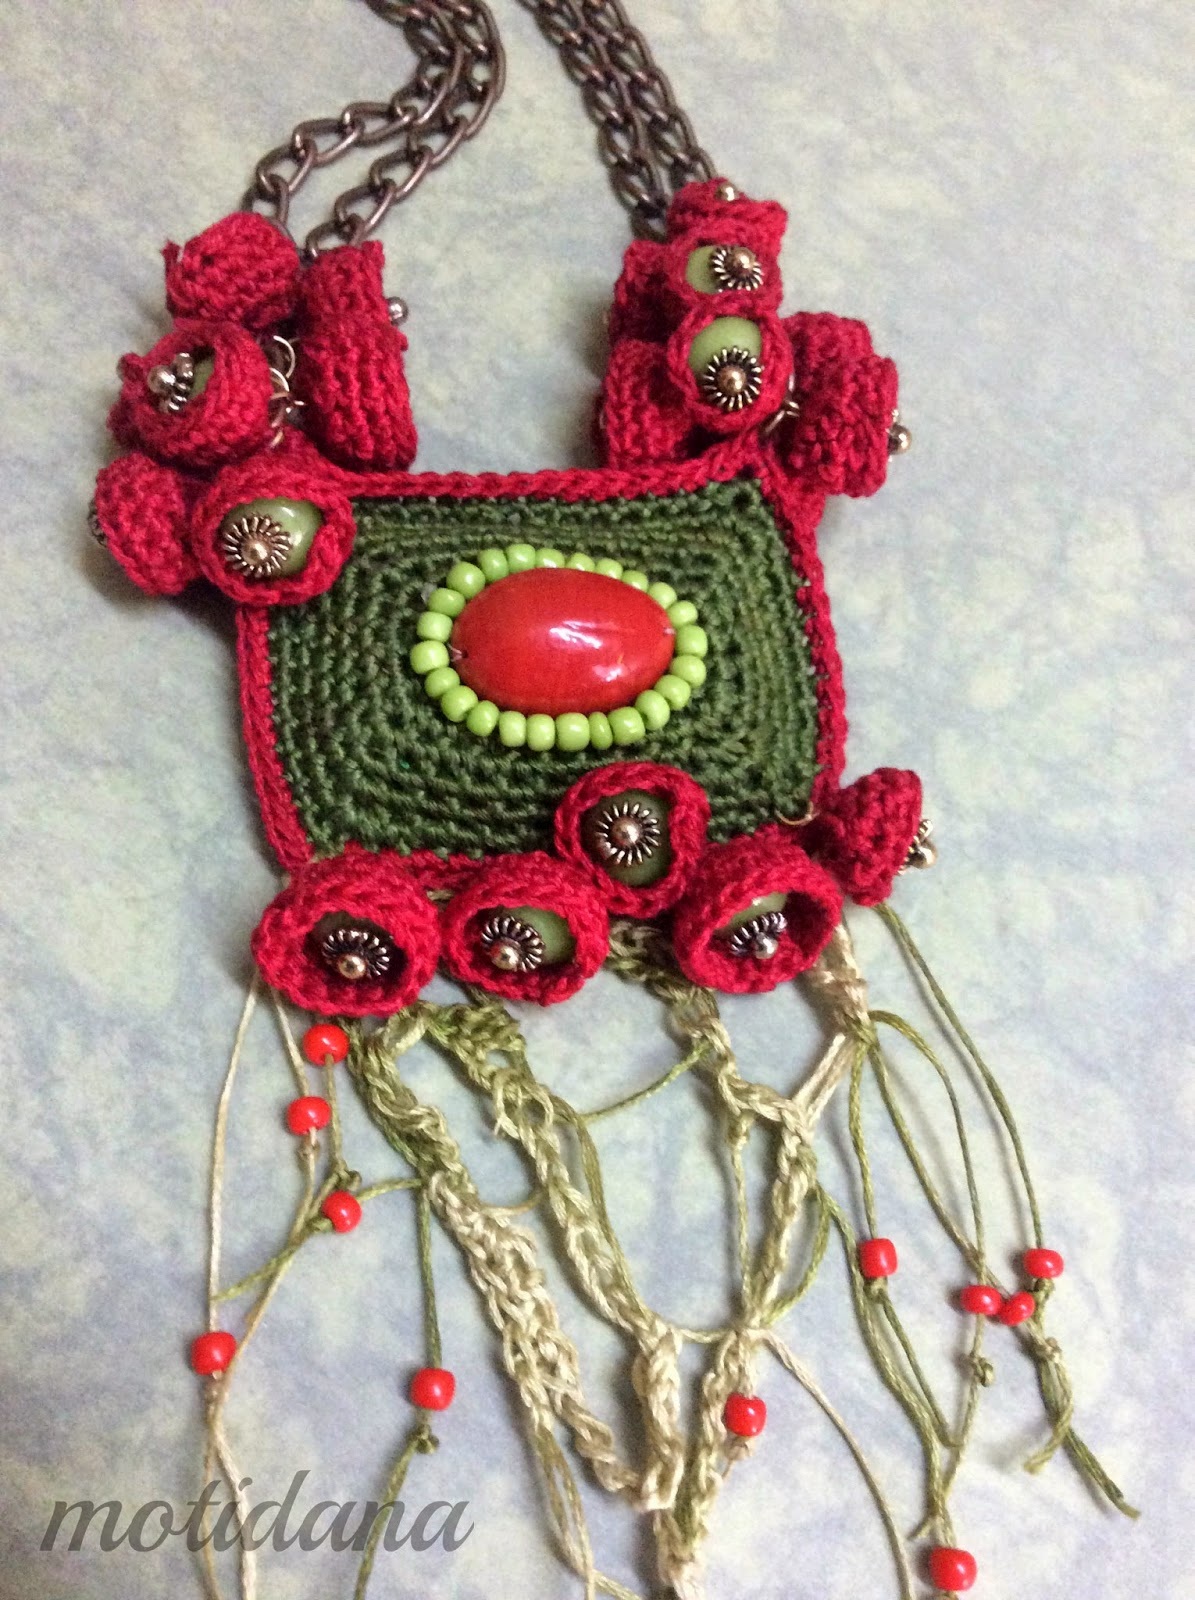 coral, and beads in crochet